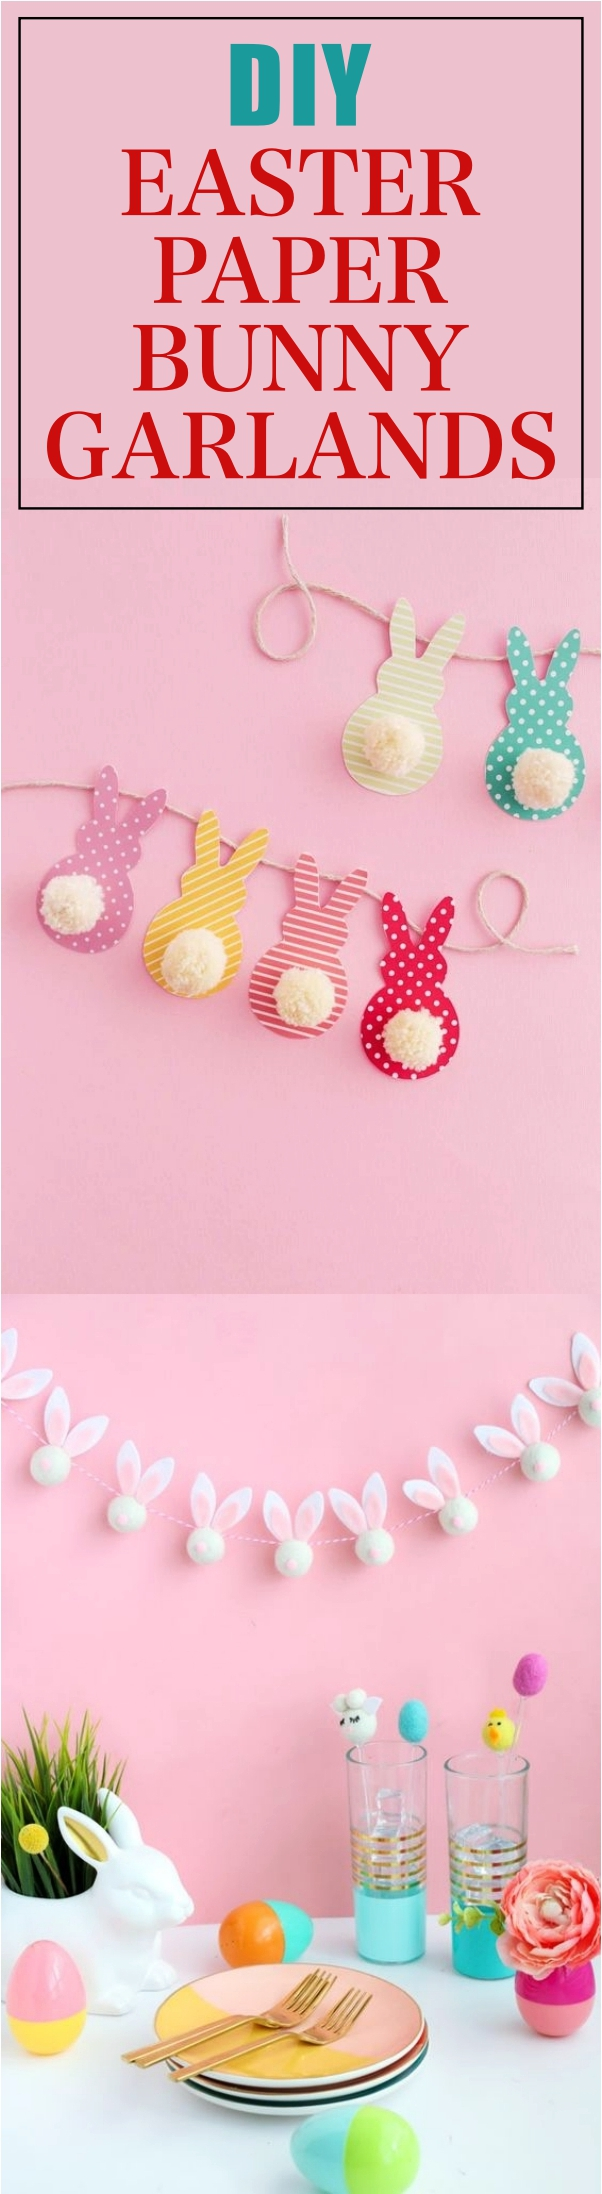 DIY-Easter-Crafts-IdDIY-Easter-Crafts-Ideas-for-Kids-and-Adultseas-for-Kids-and-Adults